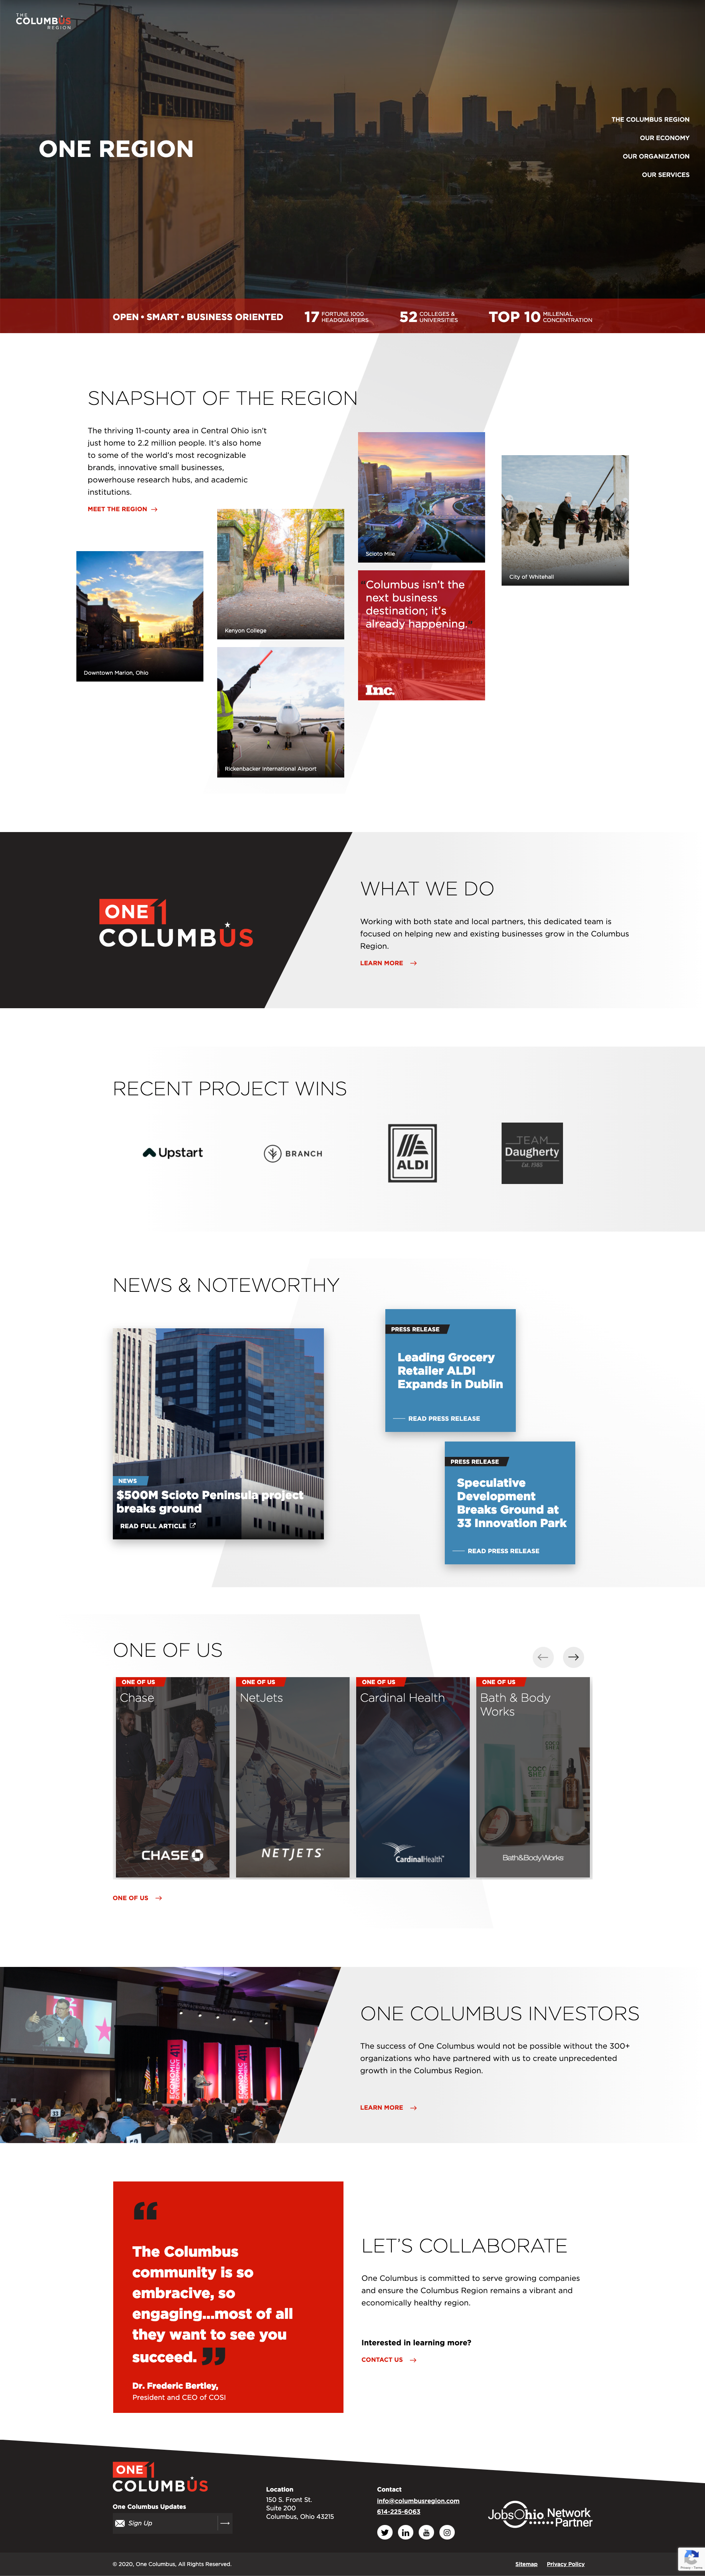 The-Columbus-Region-Partners-Committed-to-Economic-Growth-in-Central-Ohio